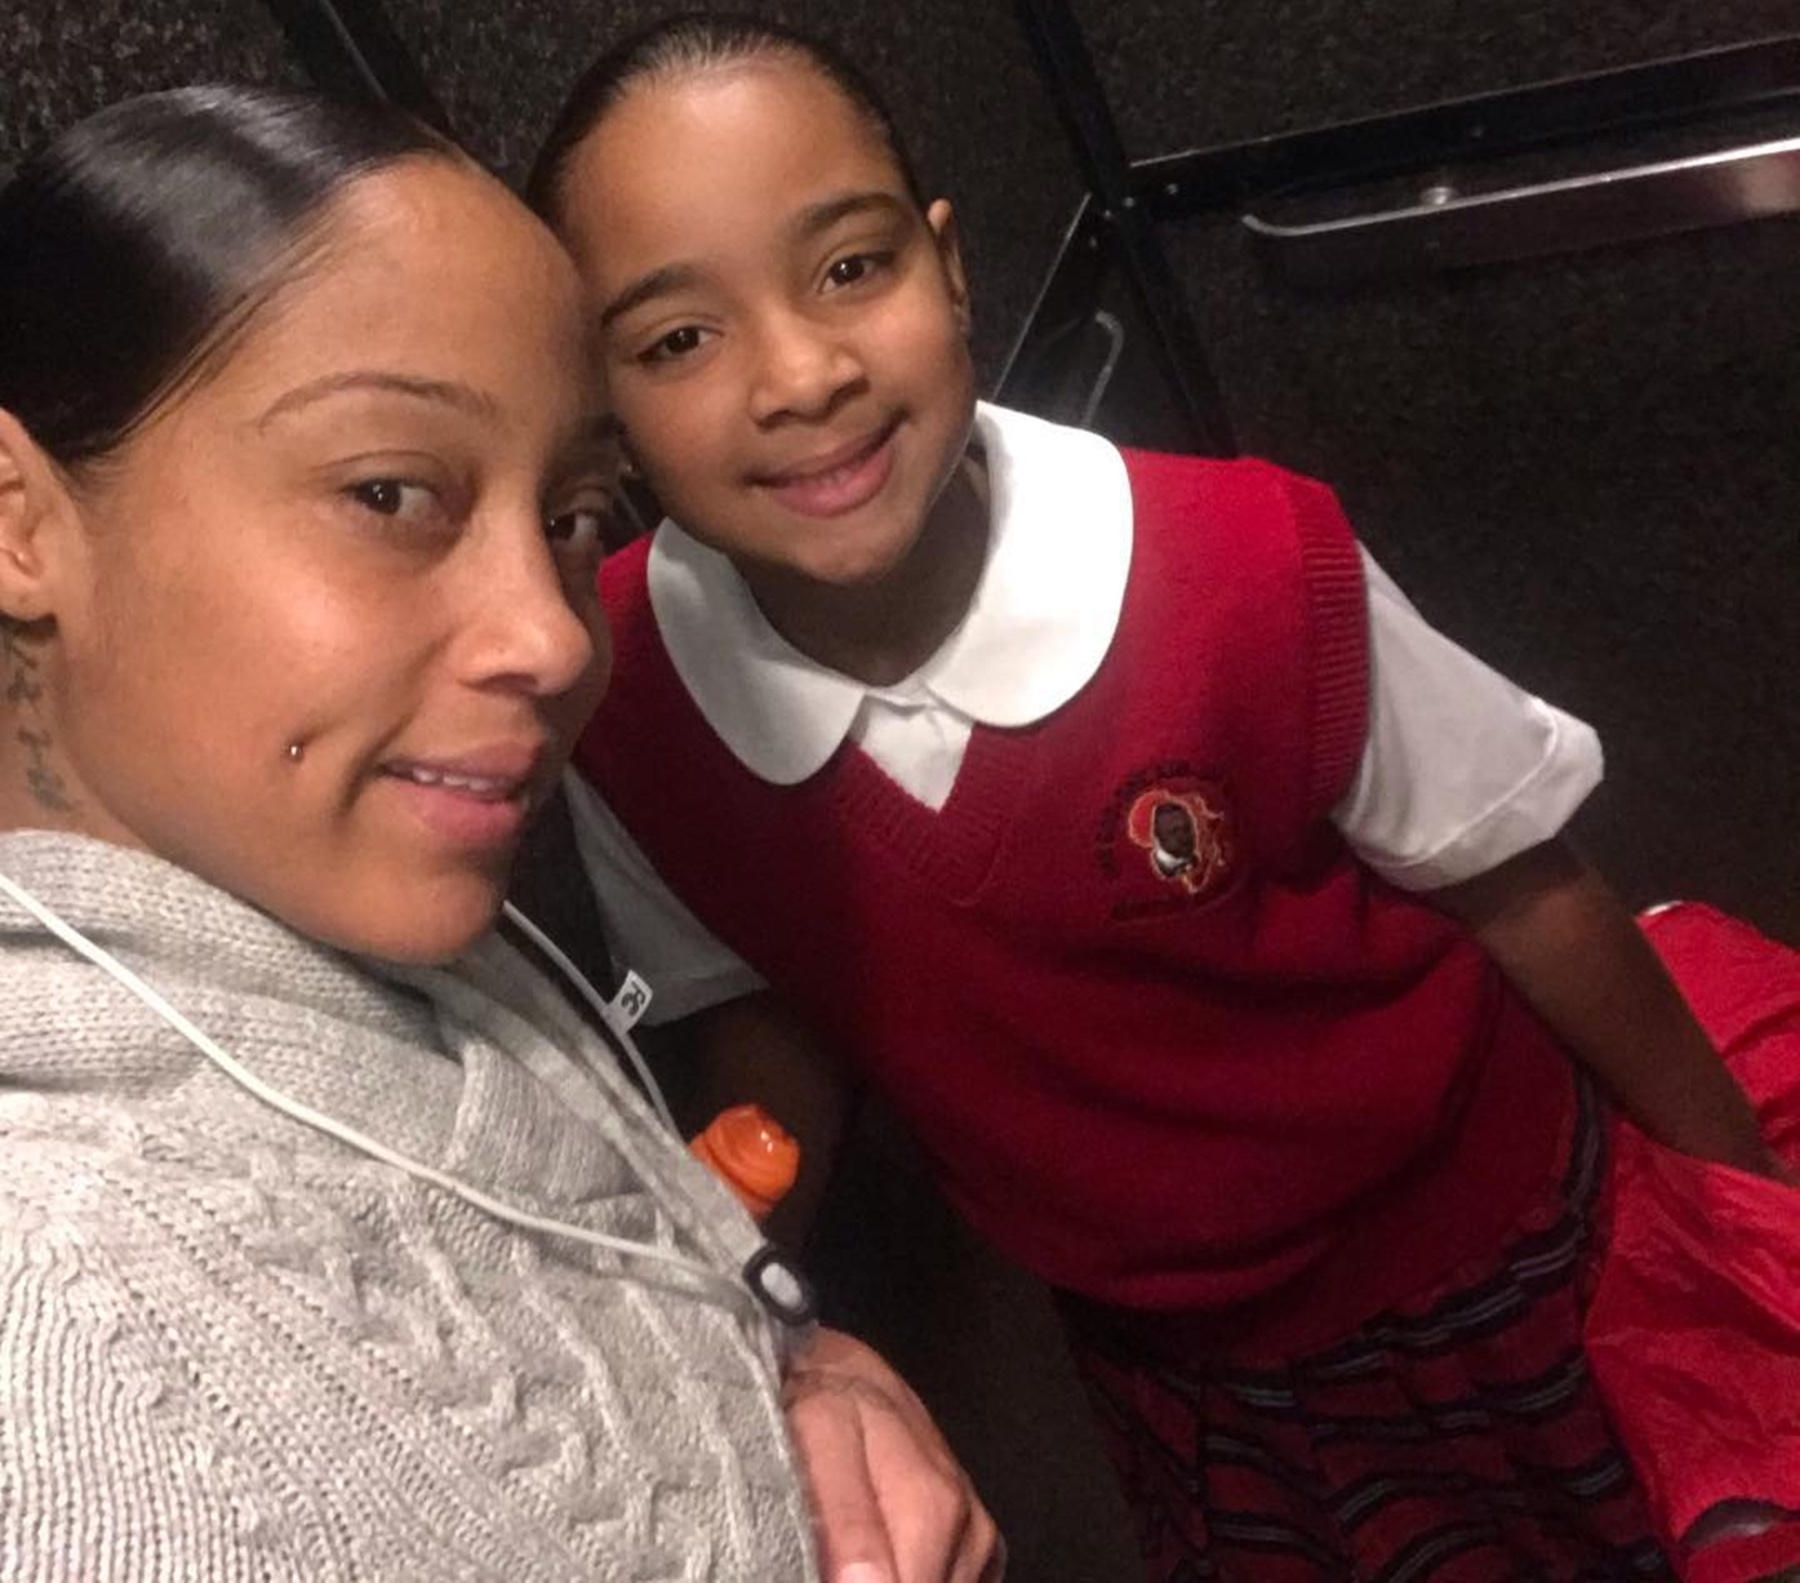 tanisha-asghedom-aka-chyna-hussle-and-daughter-emani-pay-tribute-to-nipsey-hussle-in-new-video-and-picture-fans-defend-her-from-clout-chasing-charge